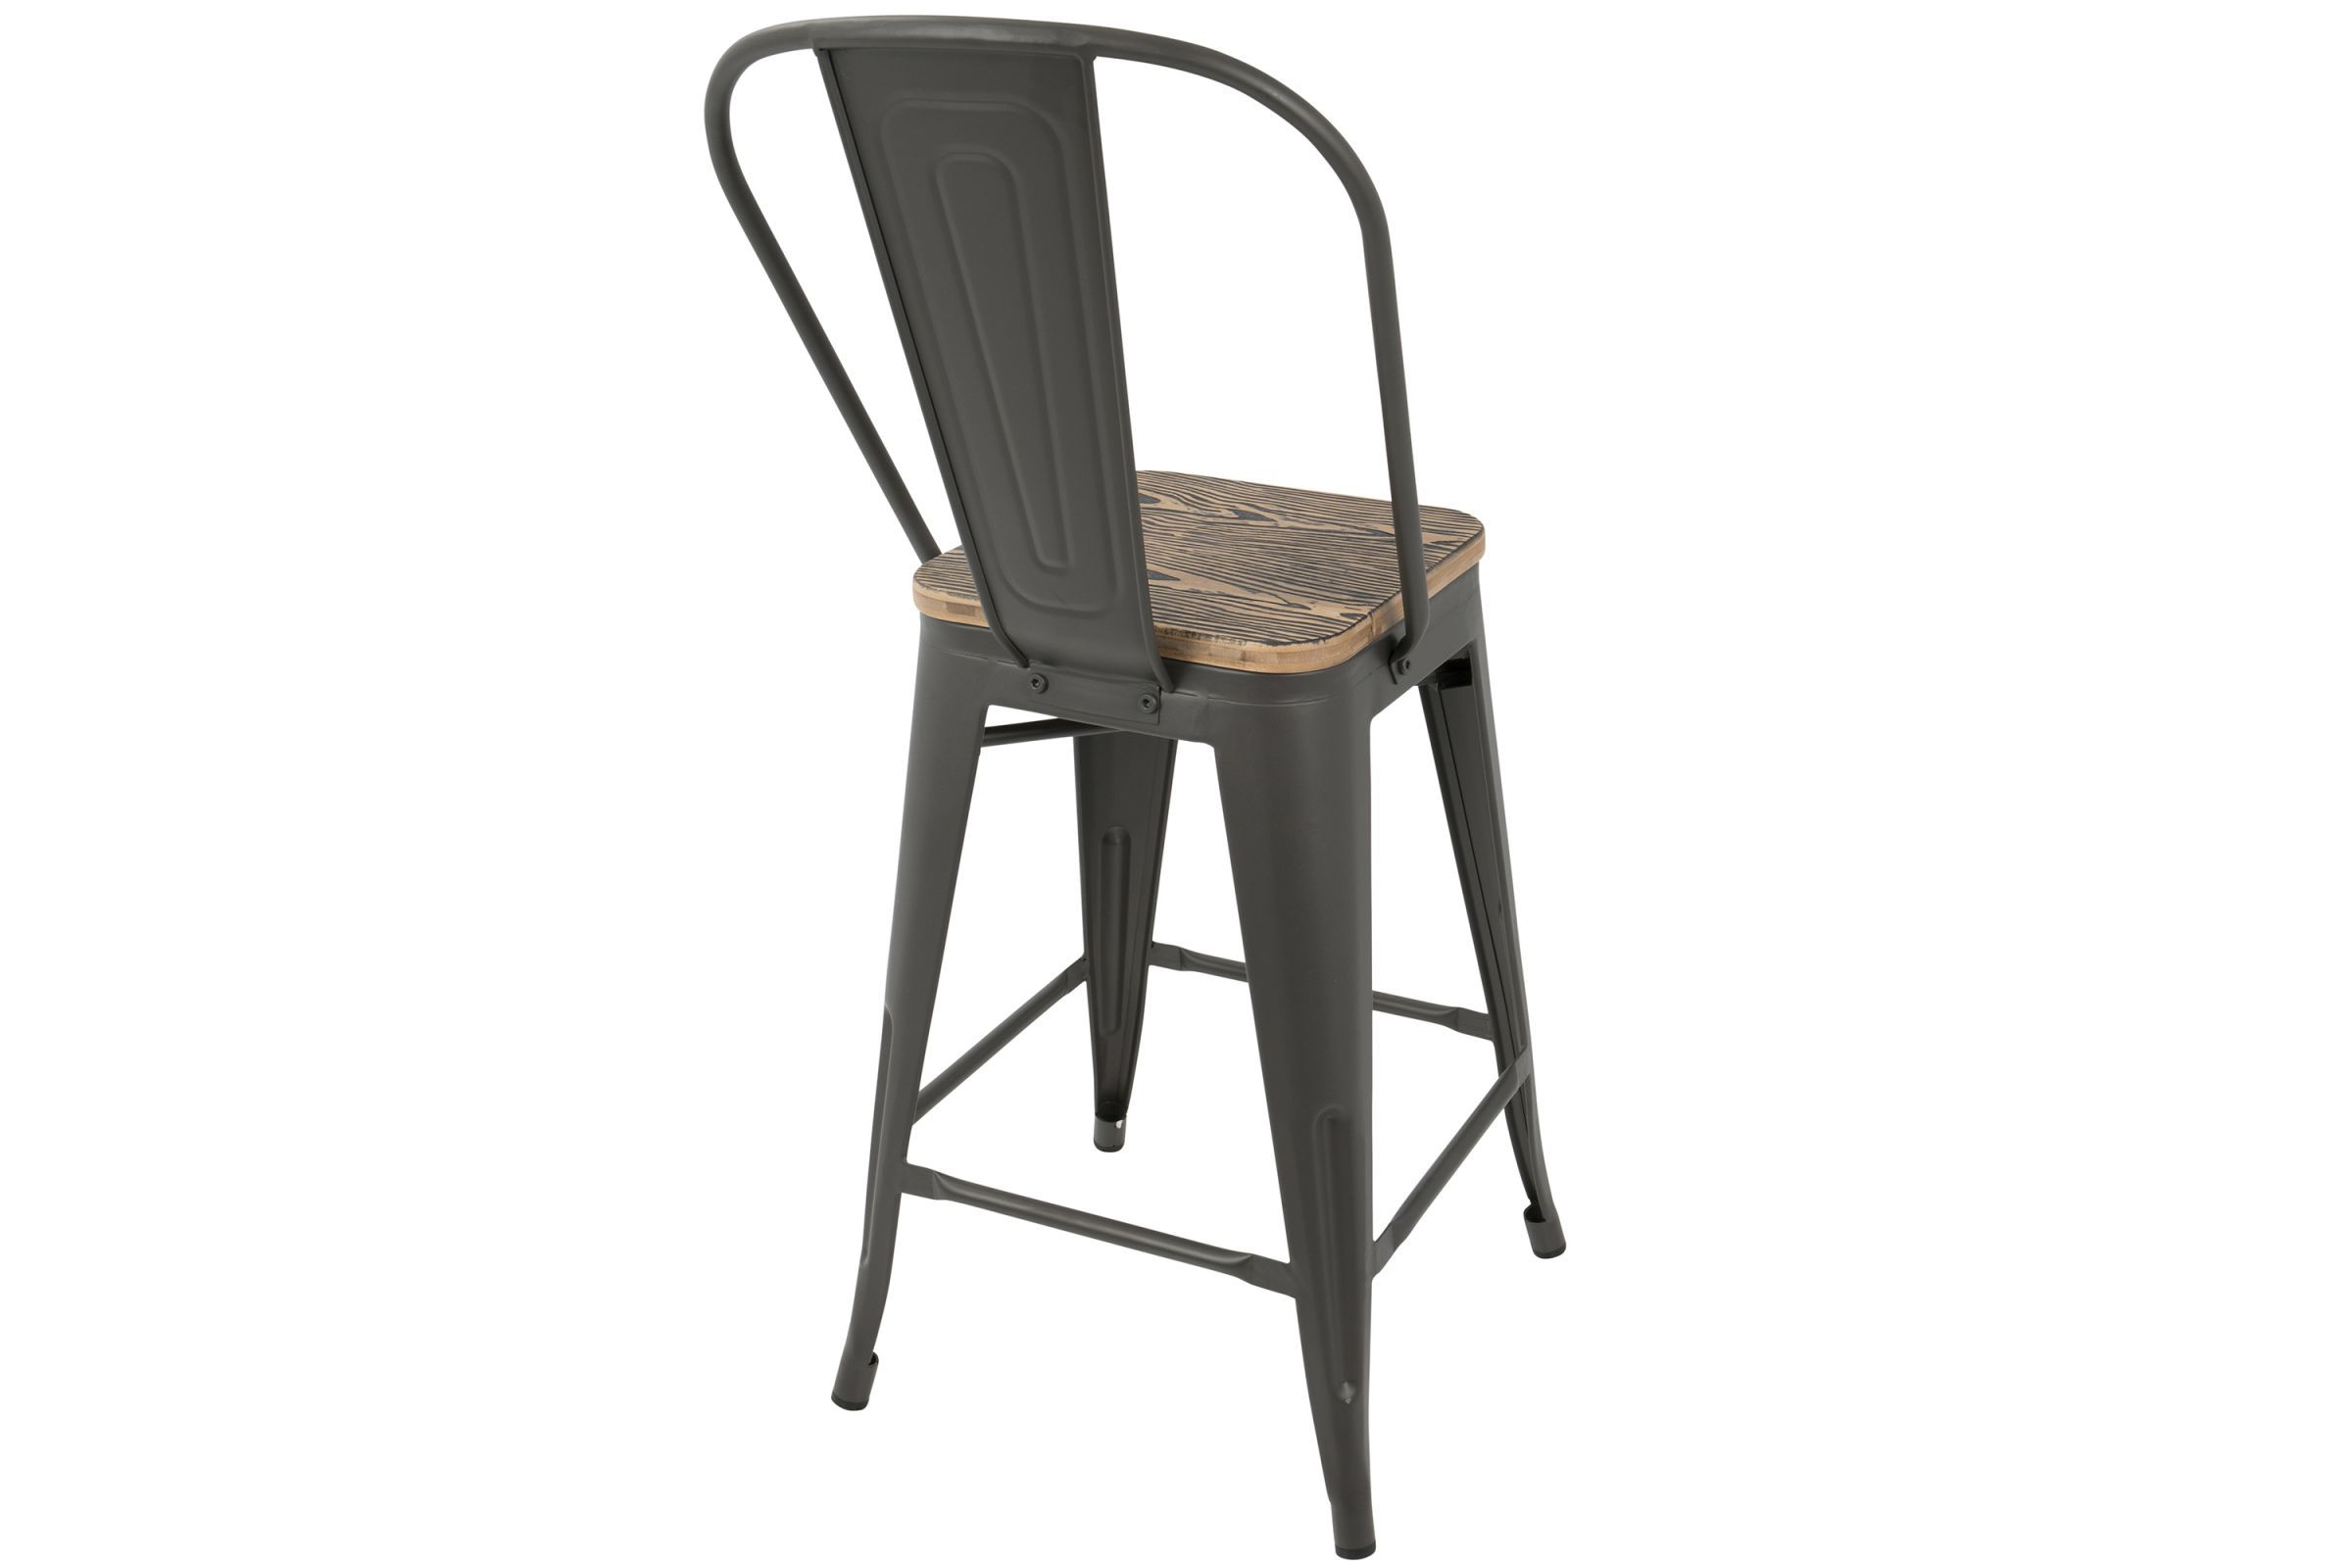 Oregon Industrial High Back Counter Stool In Grey And Brown By